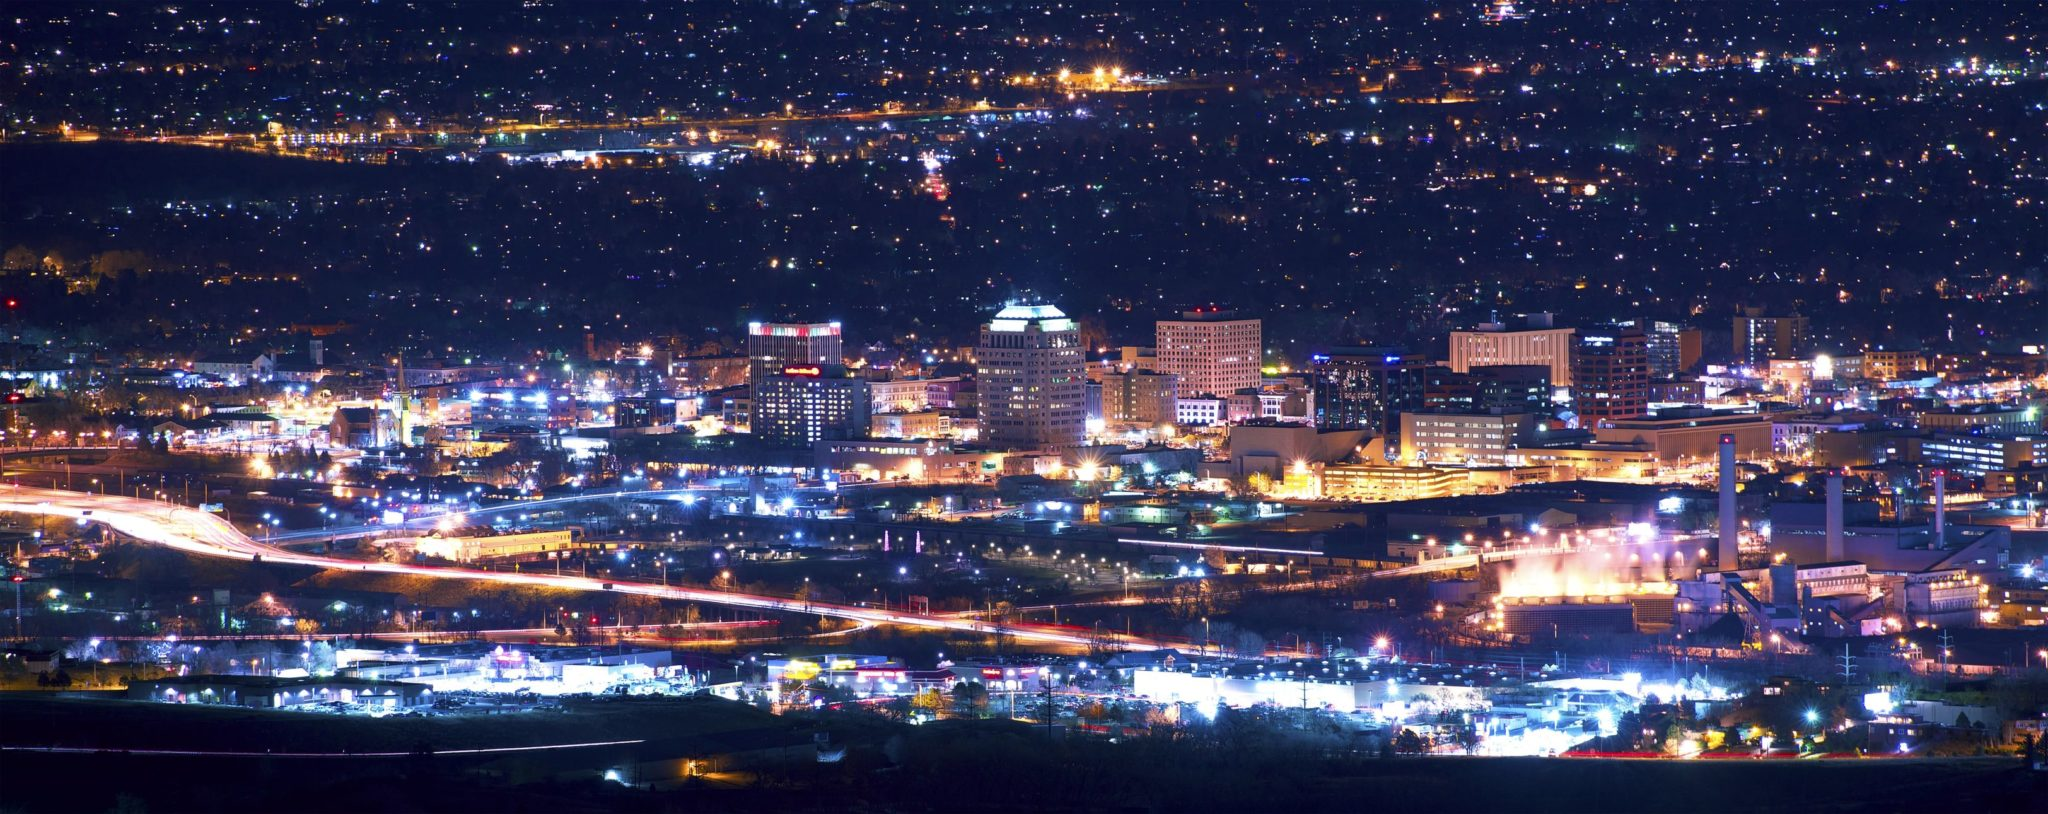 City Of Colorado Springs >> Panasonic Works With Colorado Springs To Deploy Smart City Solutions